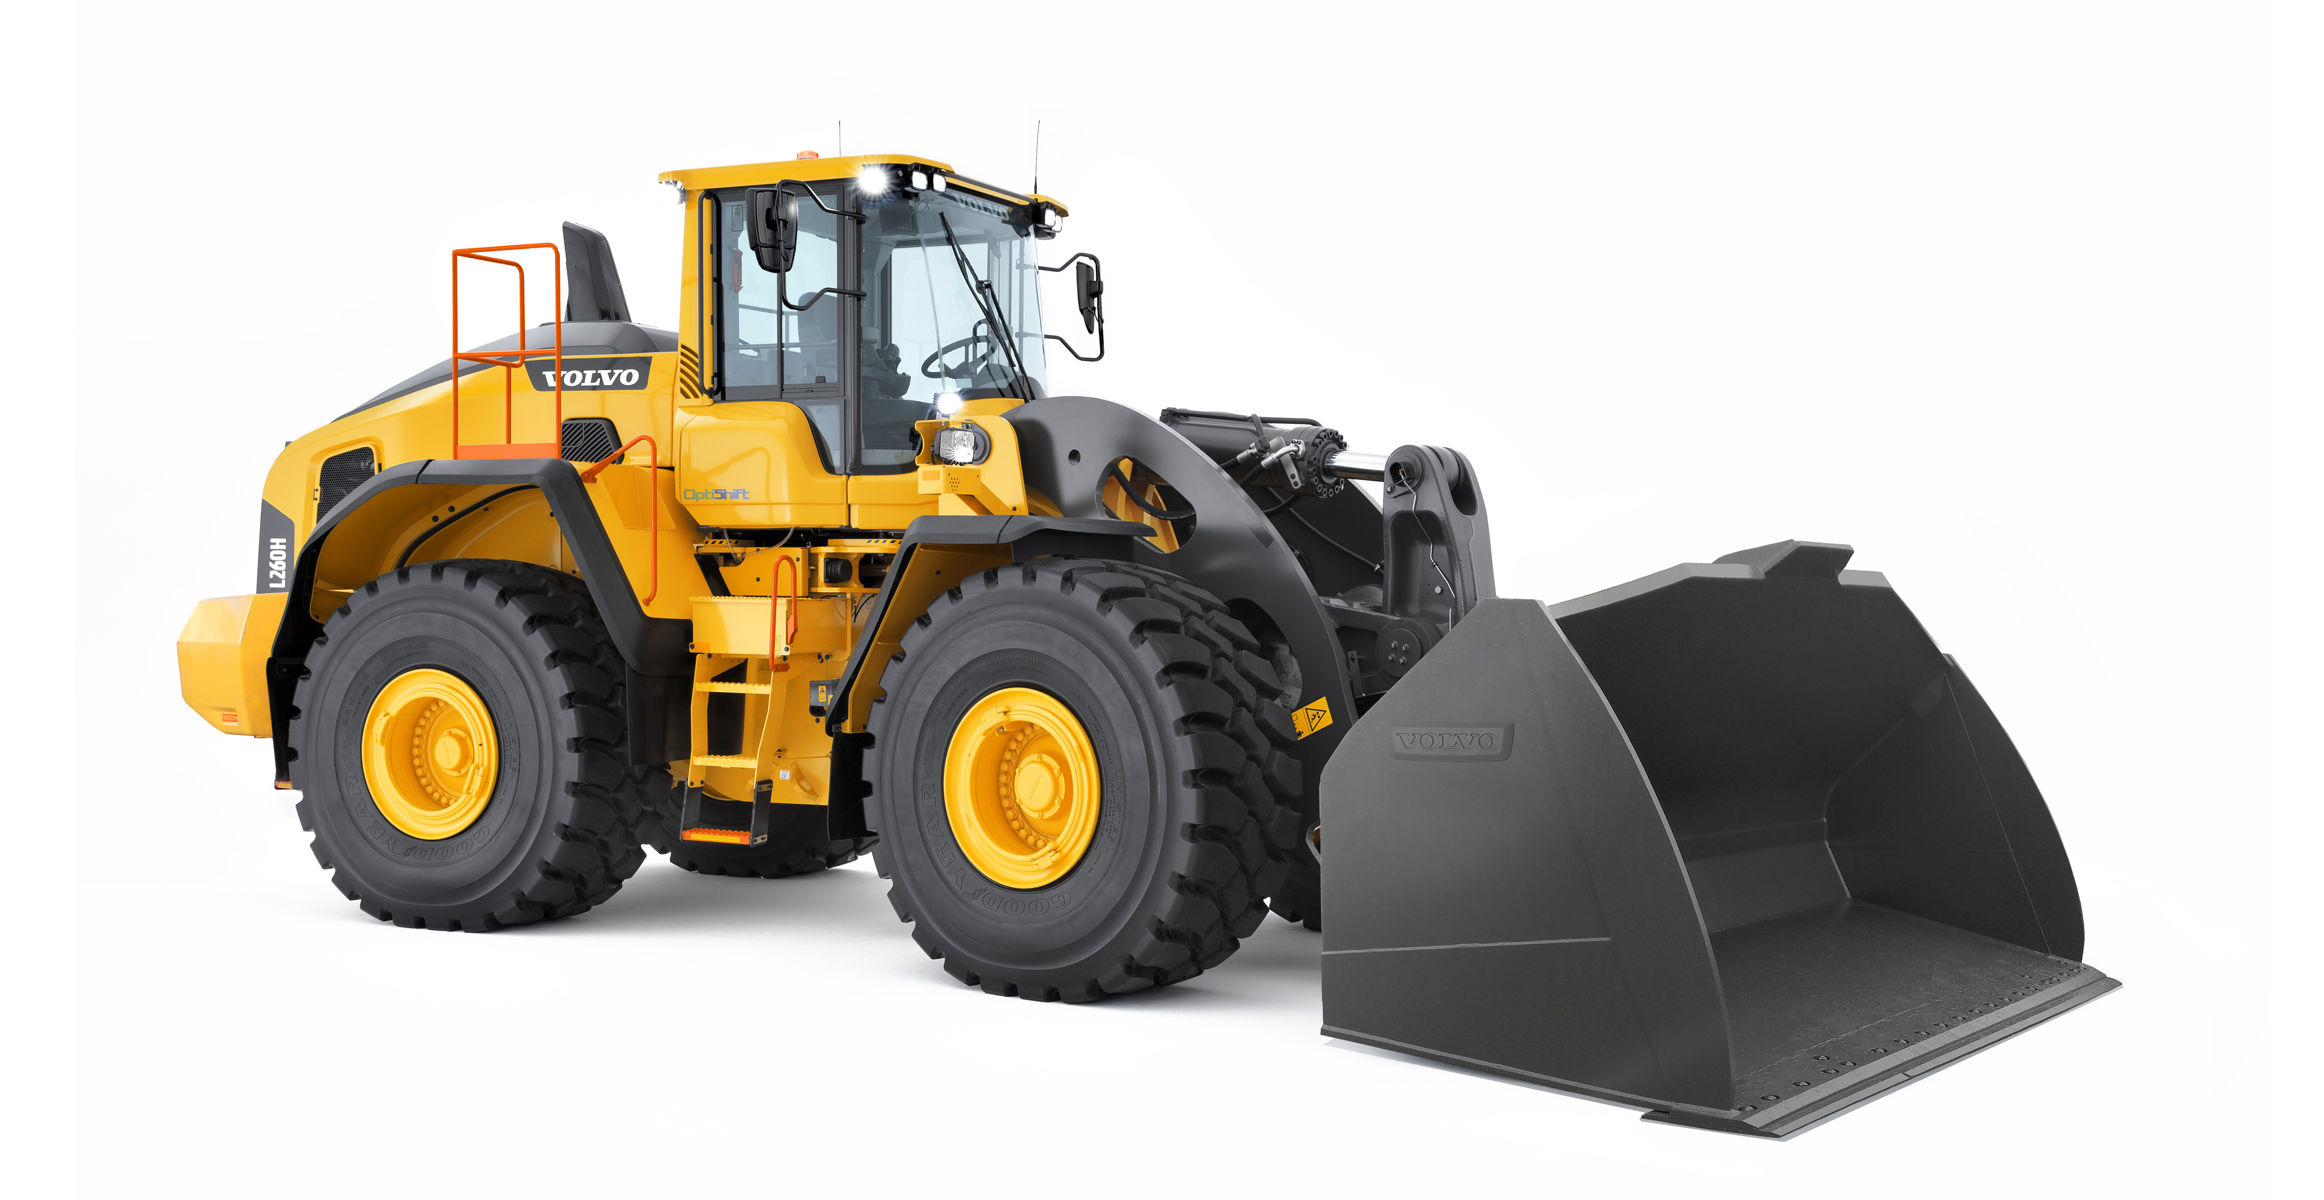 Volvo L260H Front End Loader: Two full buckets for one full truck